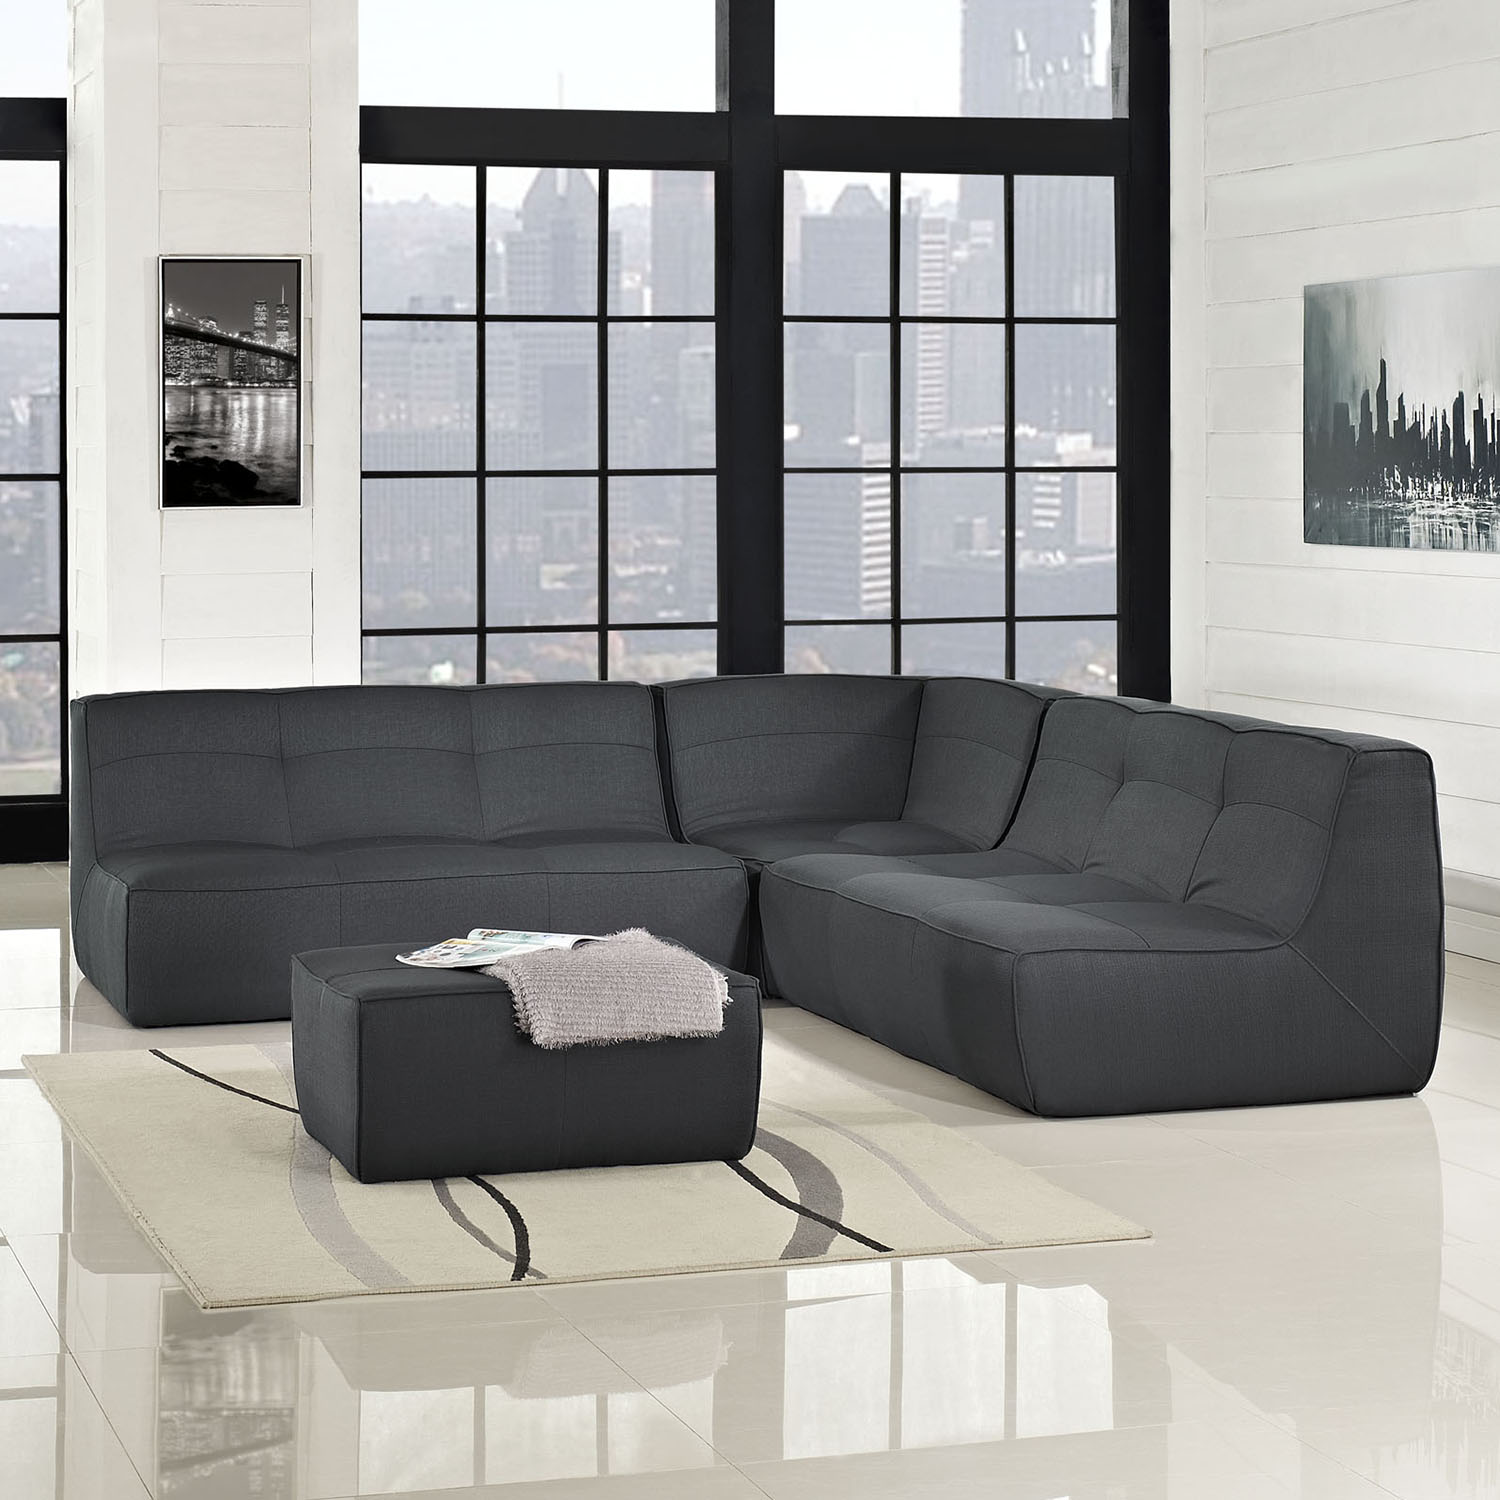 Align 4 Pieces Upholstered Sectional Sofa Set - Tufted, Charcoal - EEI-1288-CHA